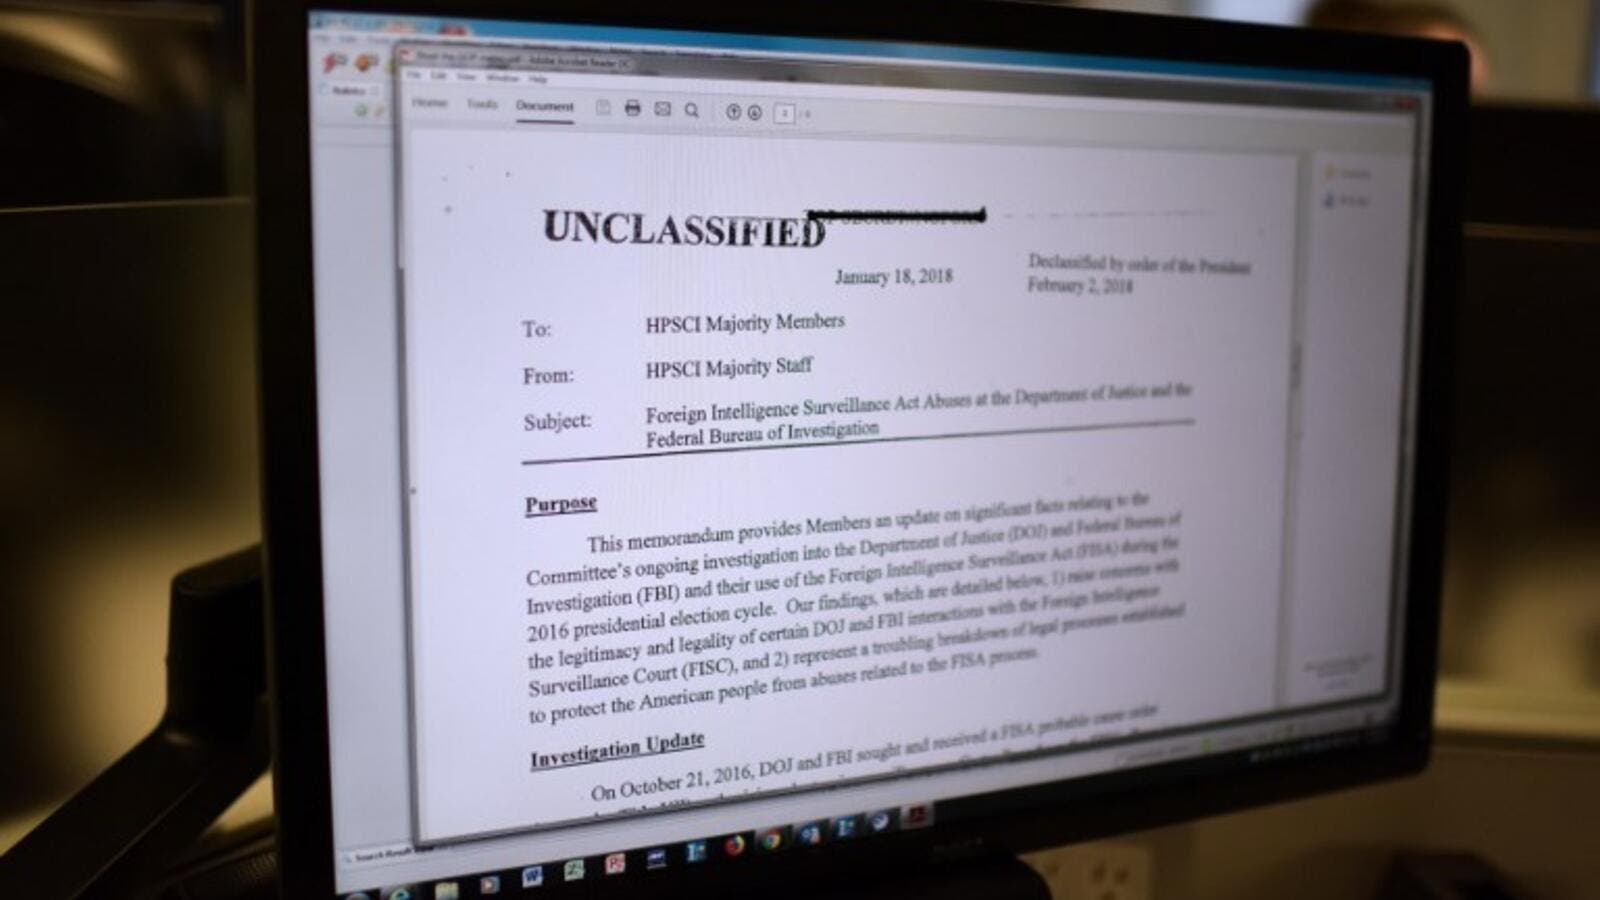 The Republican memo released by Congress is displayed on a journalist's computer screen at a newsroom in Washington DC, on Feb. 2, 2018. (Eric BARADAT / AFP)